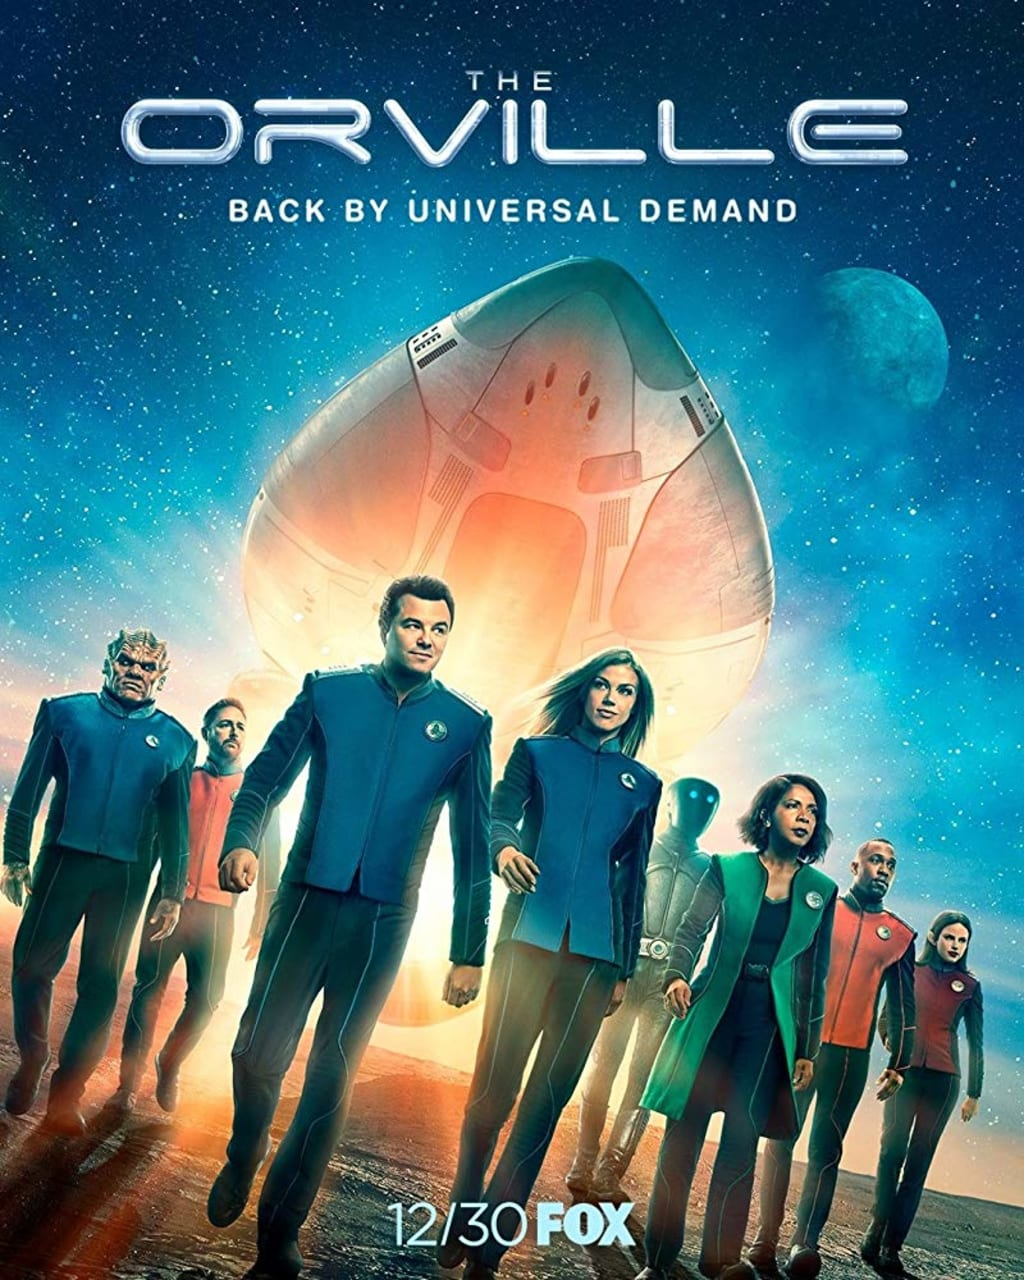 Review of 'The Orville' 2.5